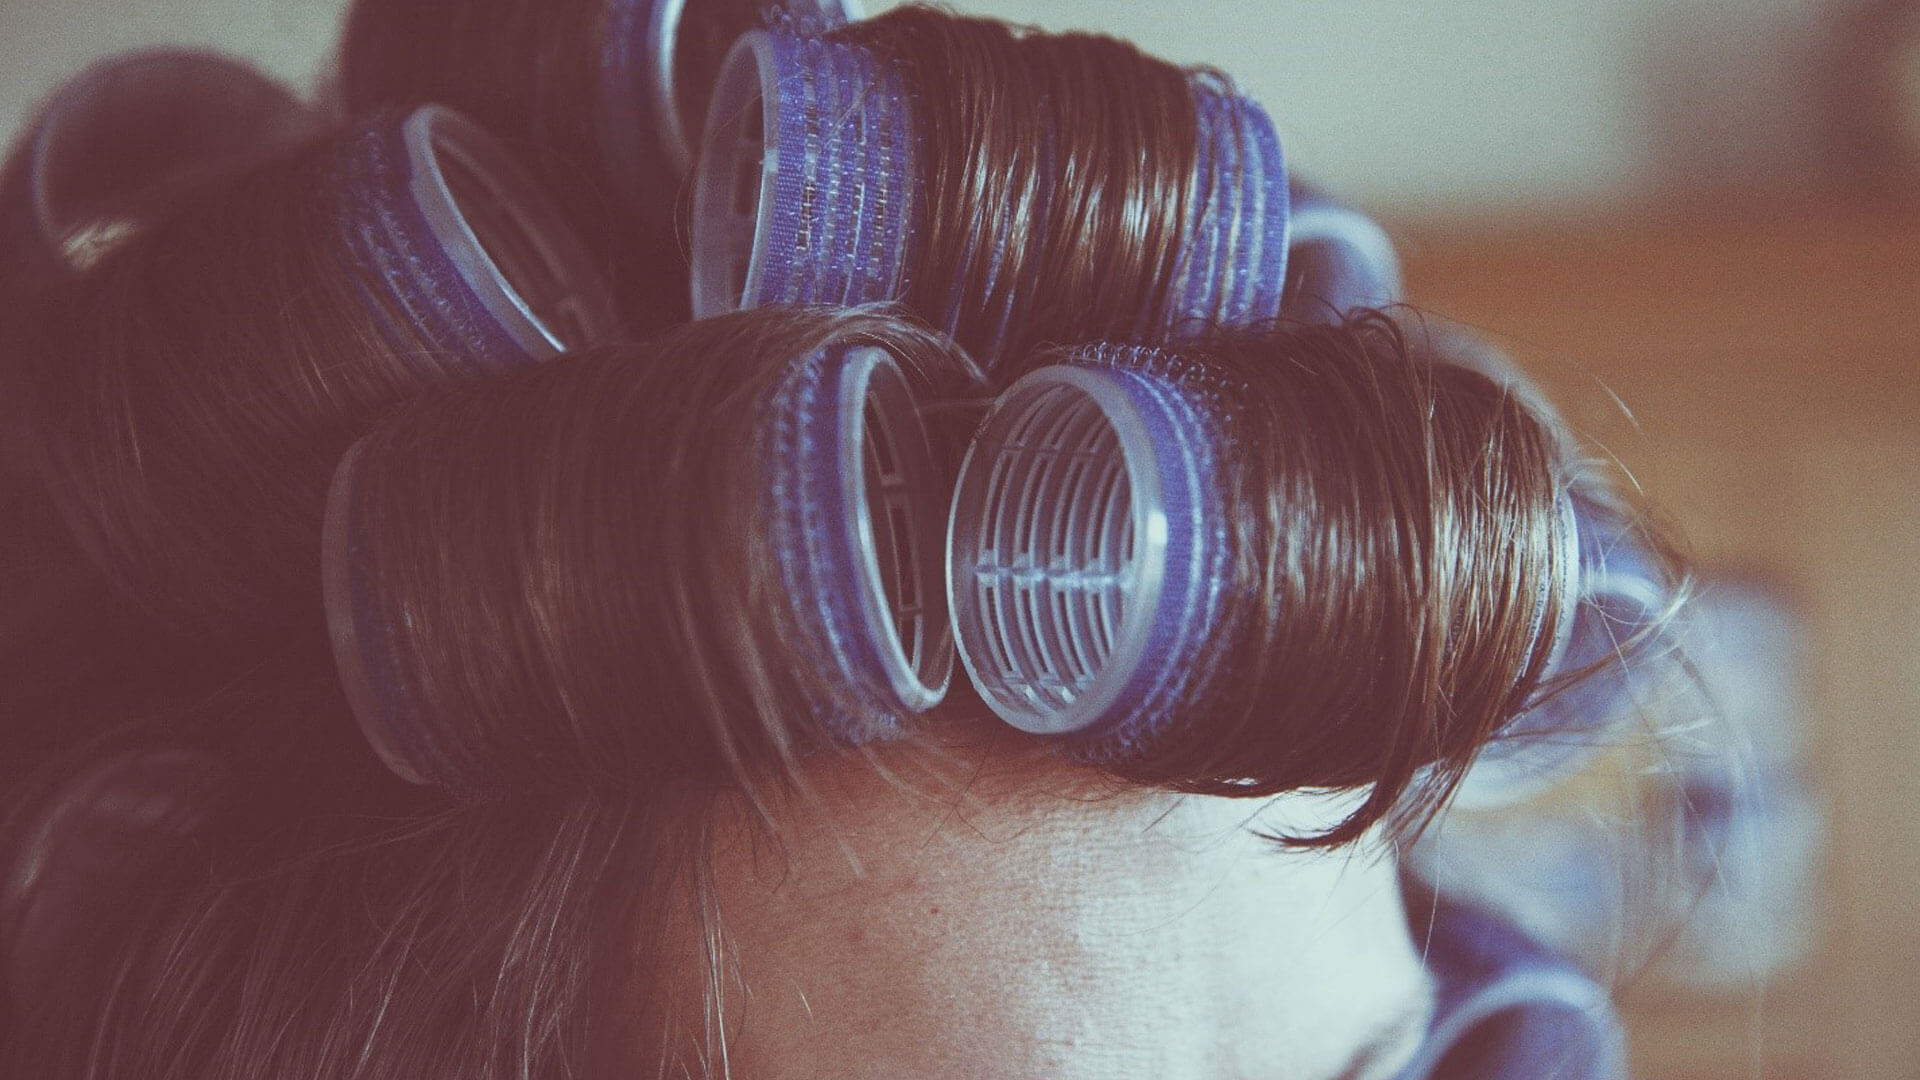 Hair rollers in a woman's hair.